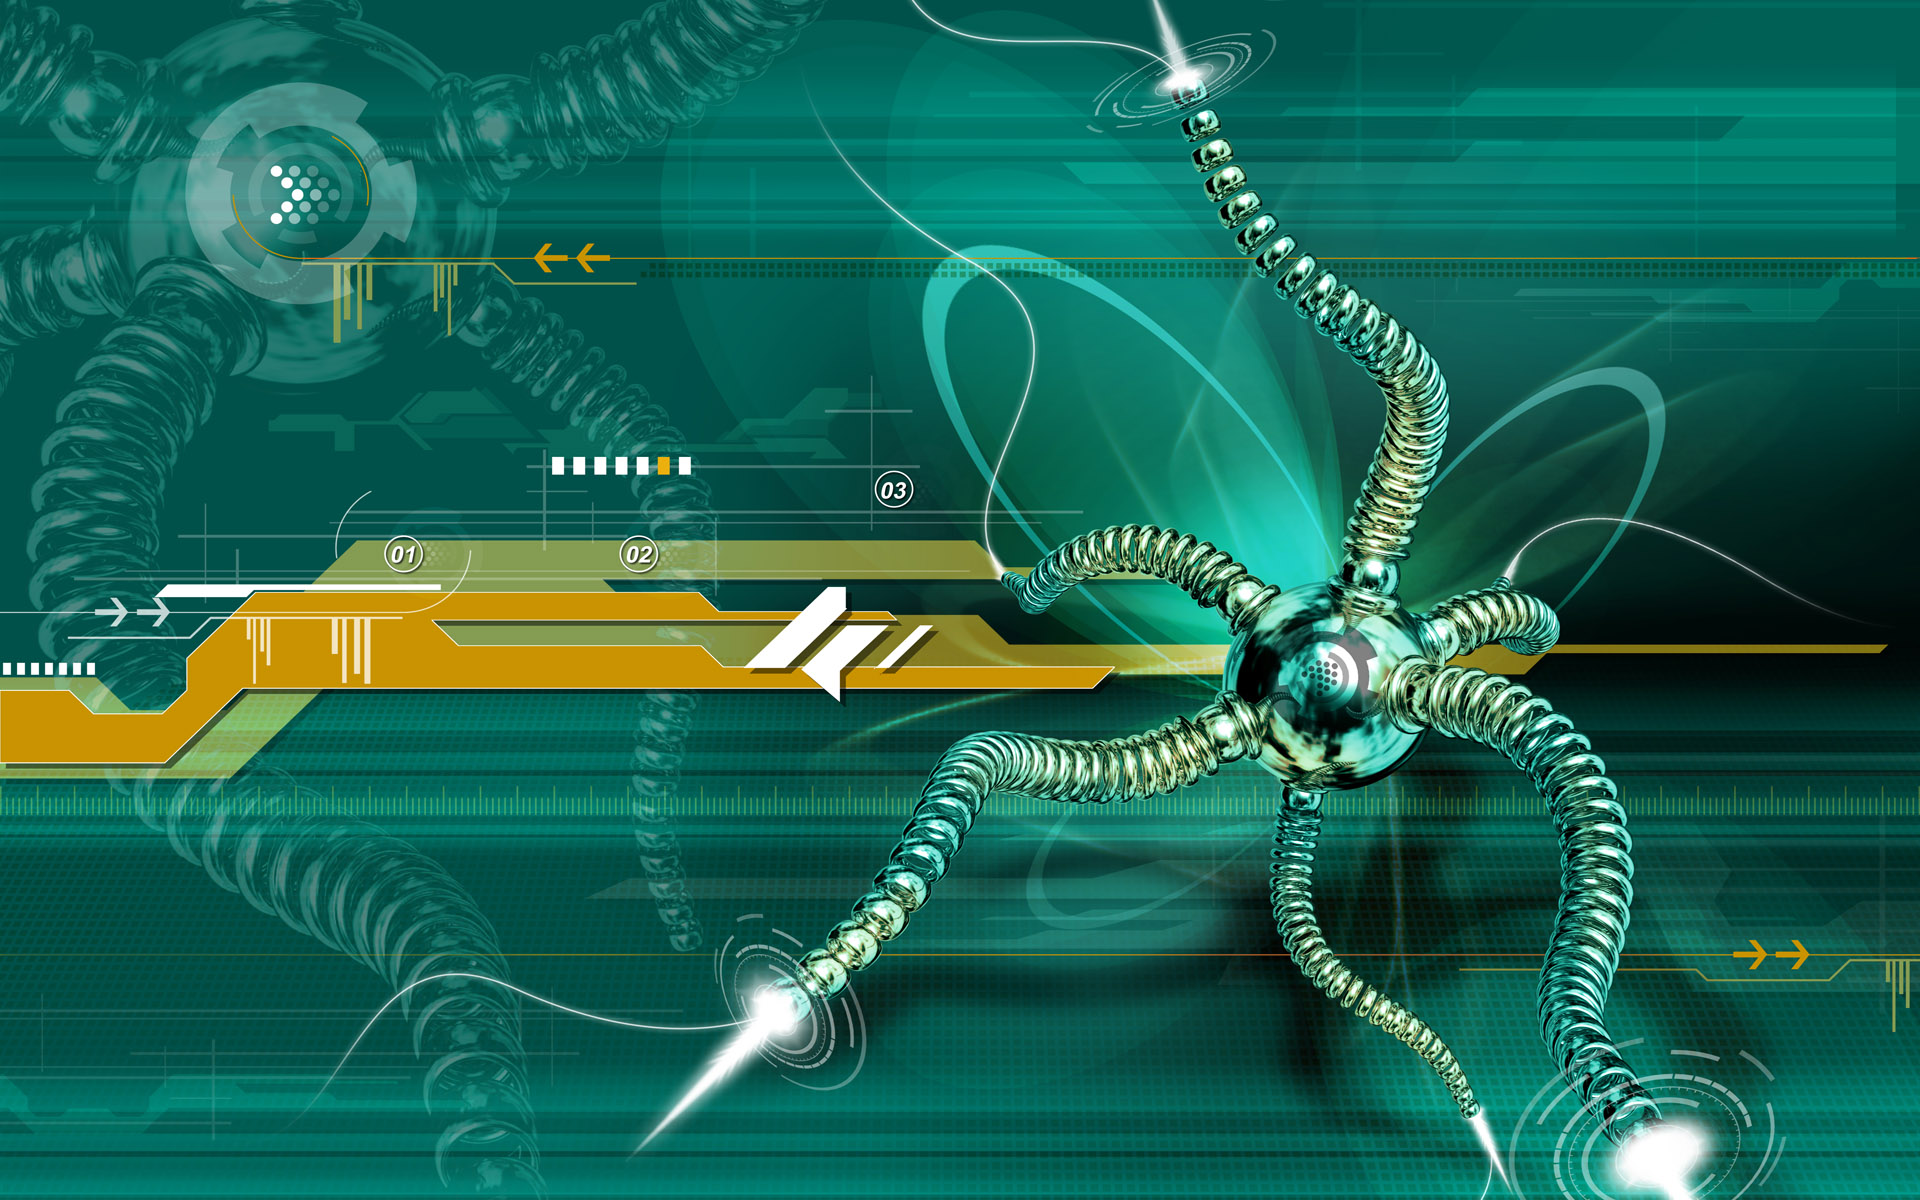 Web Spider 3D - abstract wallpaper